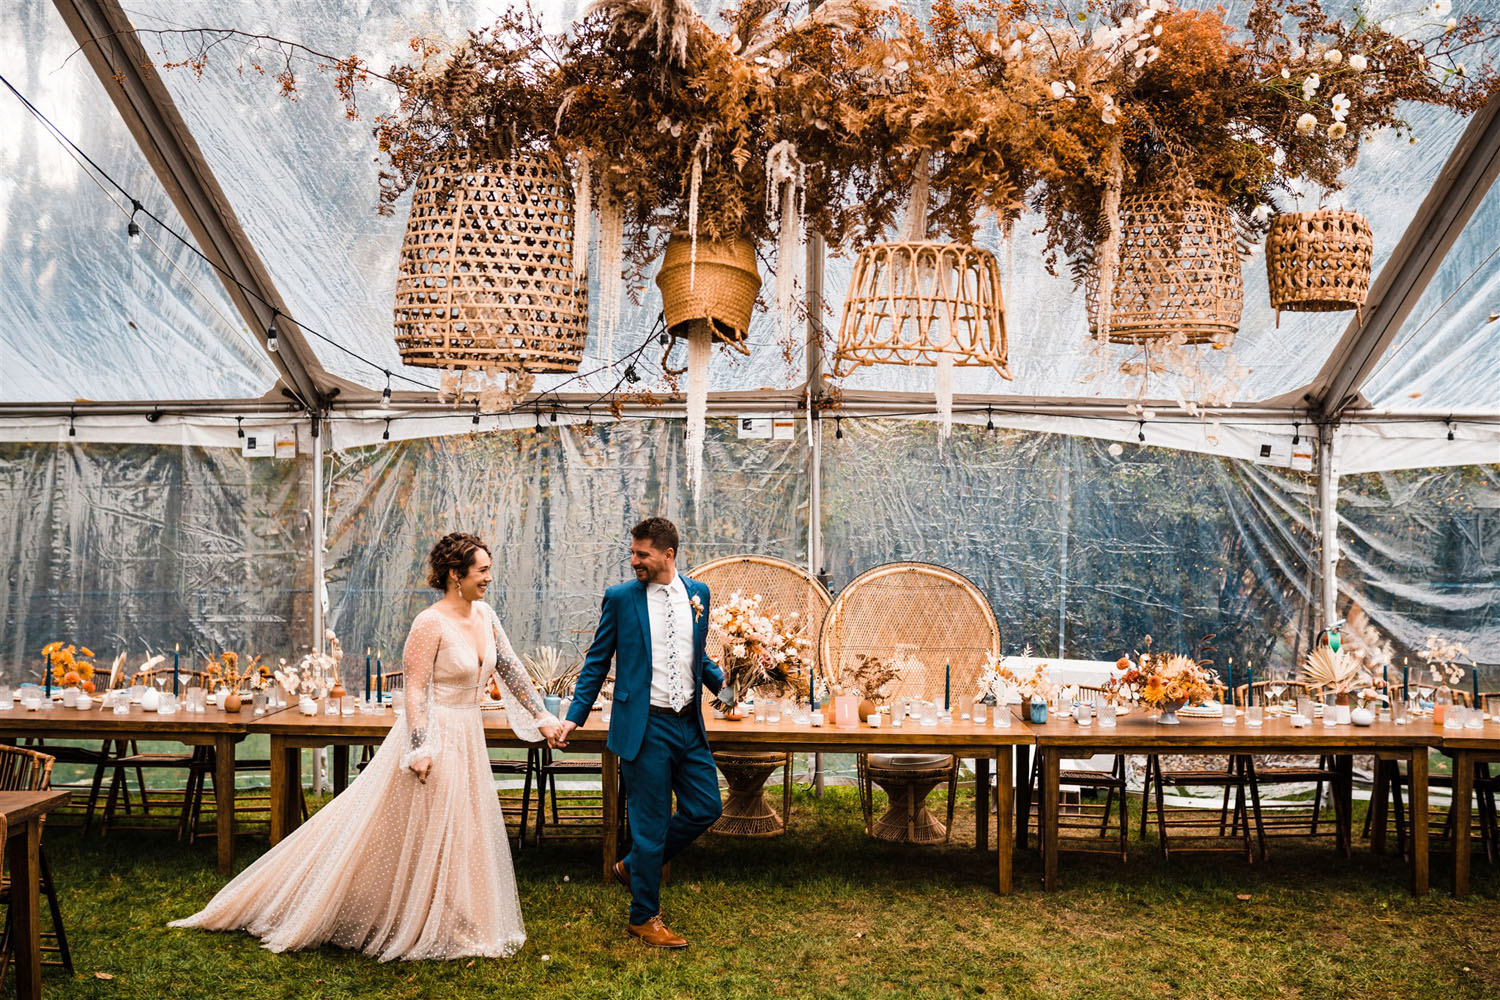 Intimate Backyard Wedding in Washington